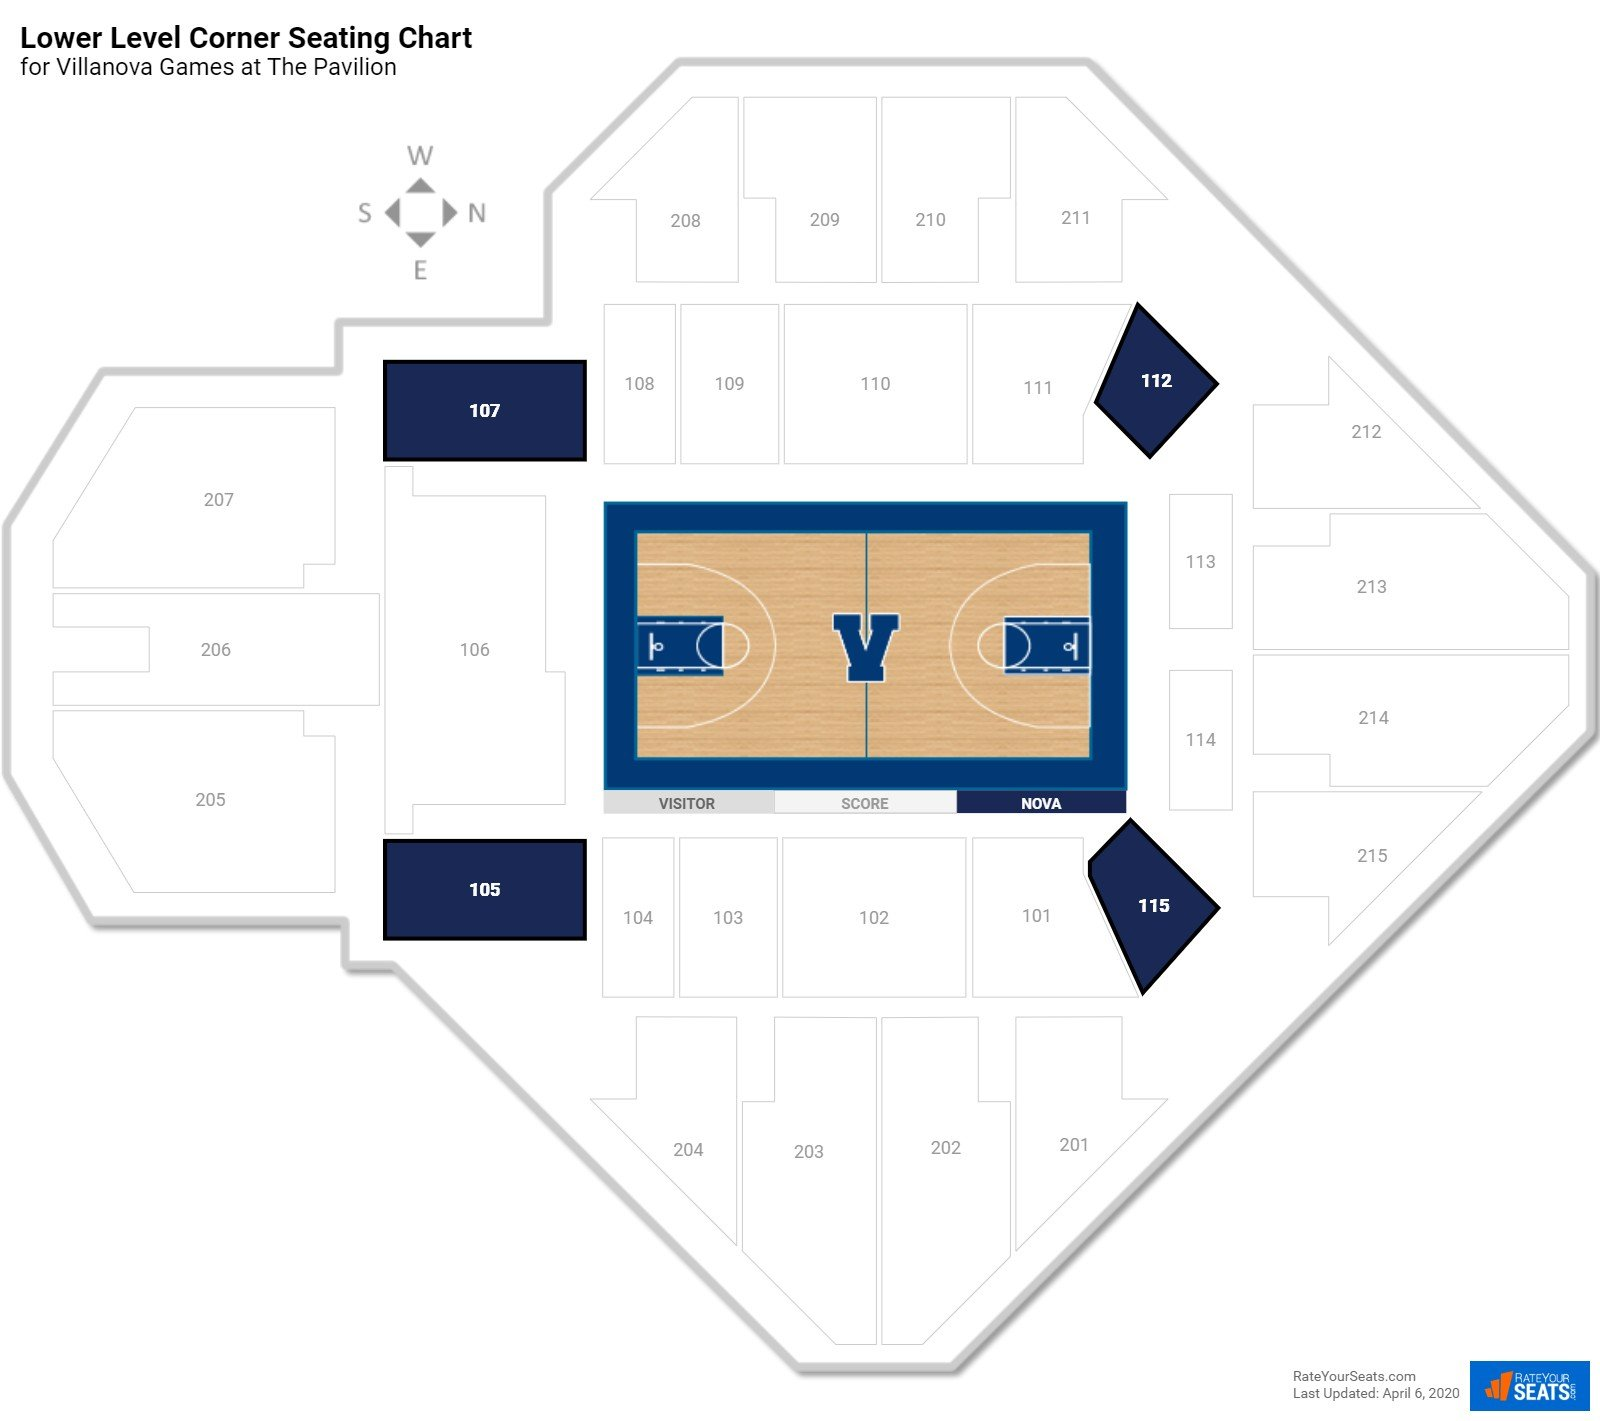 The Pavilion (Villanova) Seating Guide - RateYourSeats.com